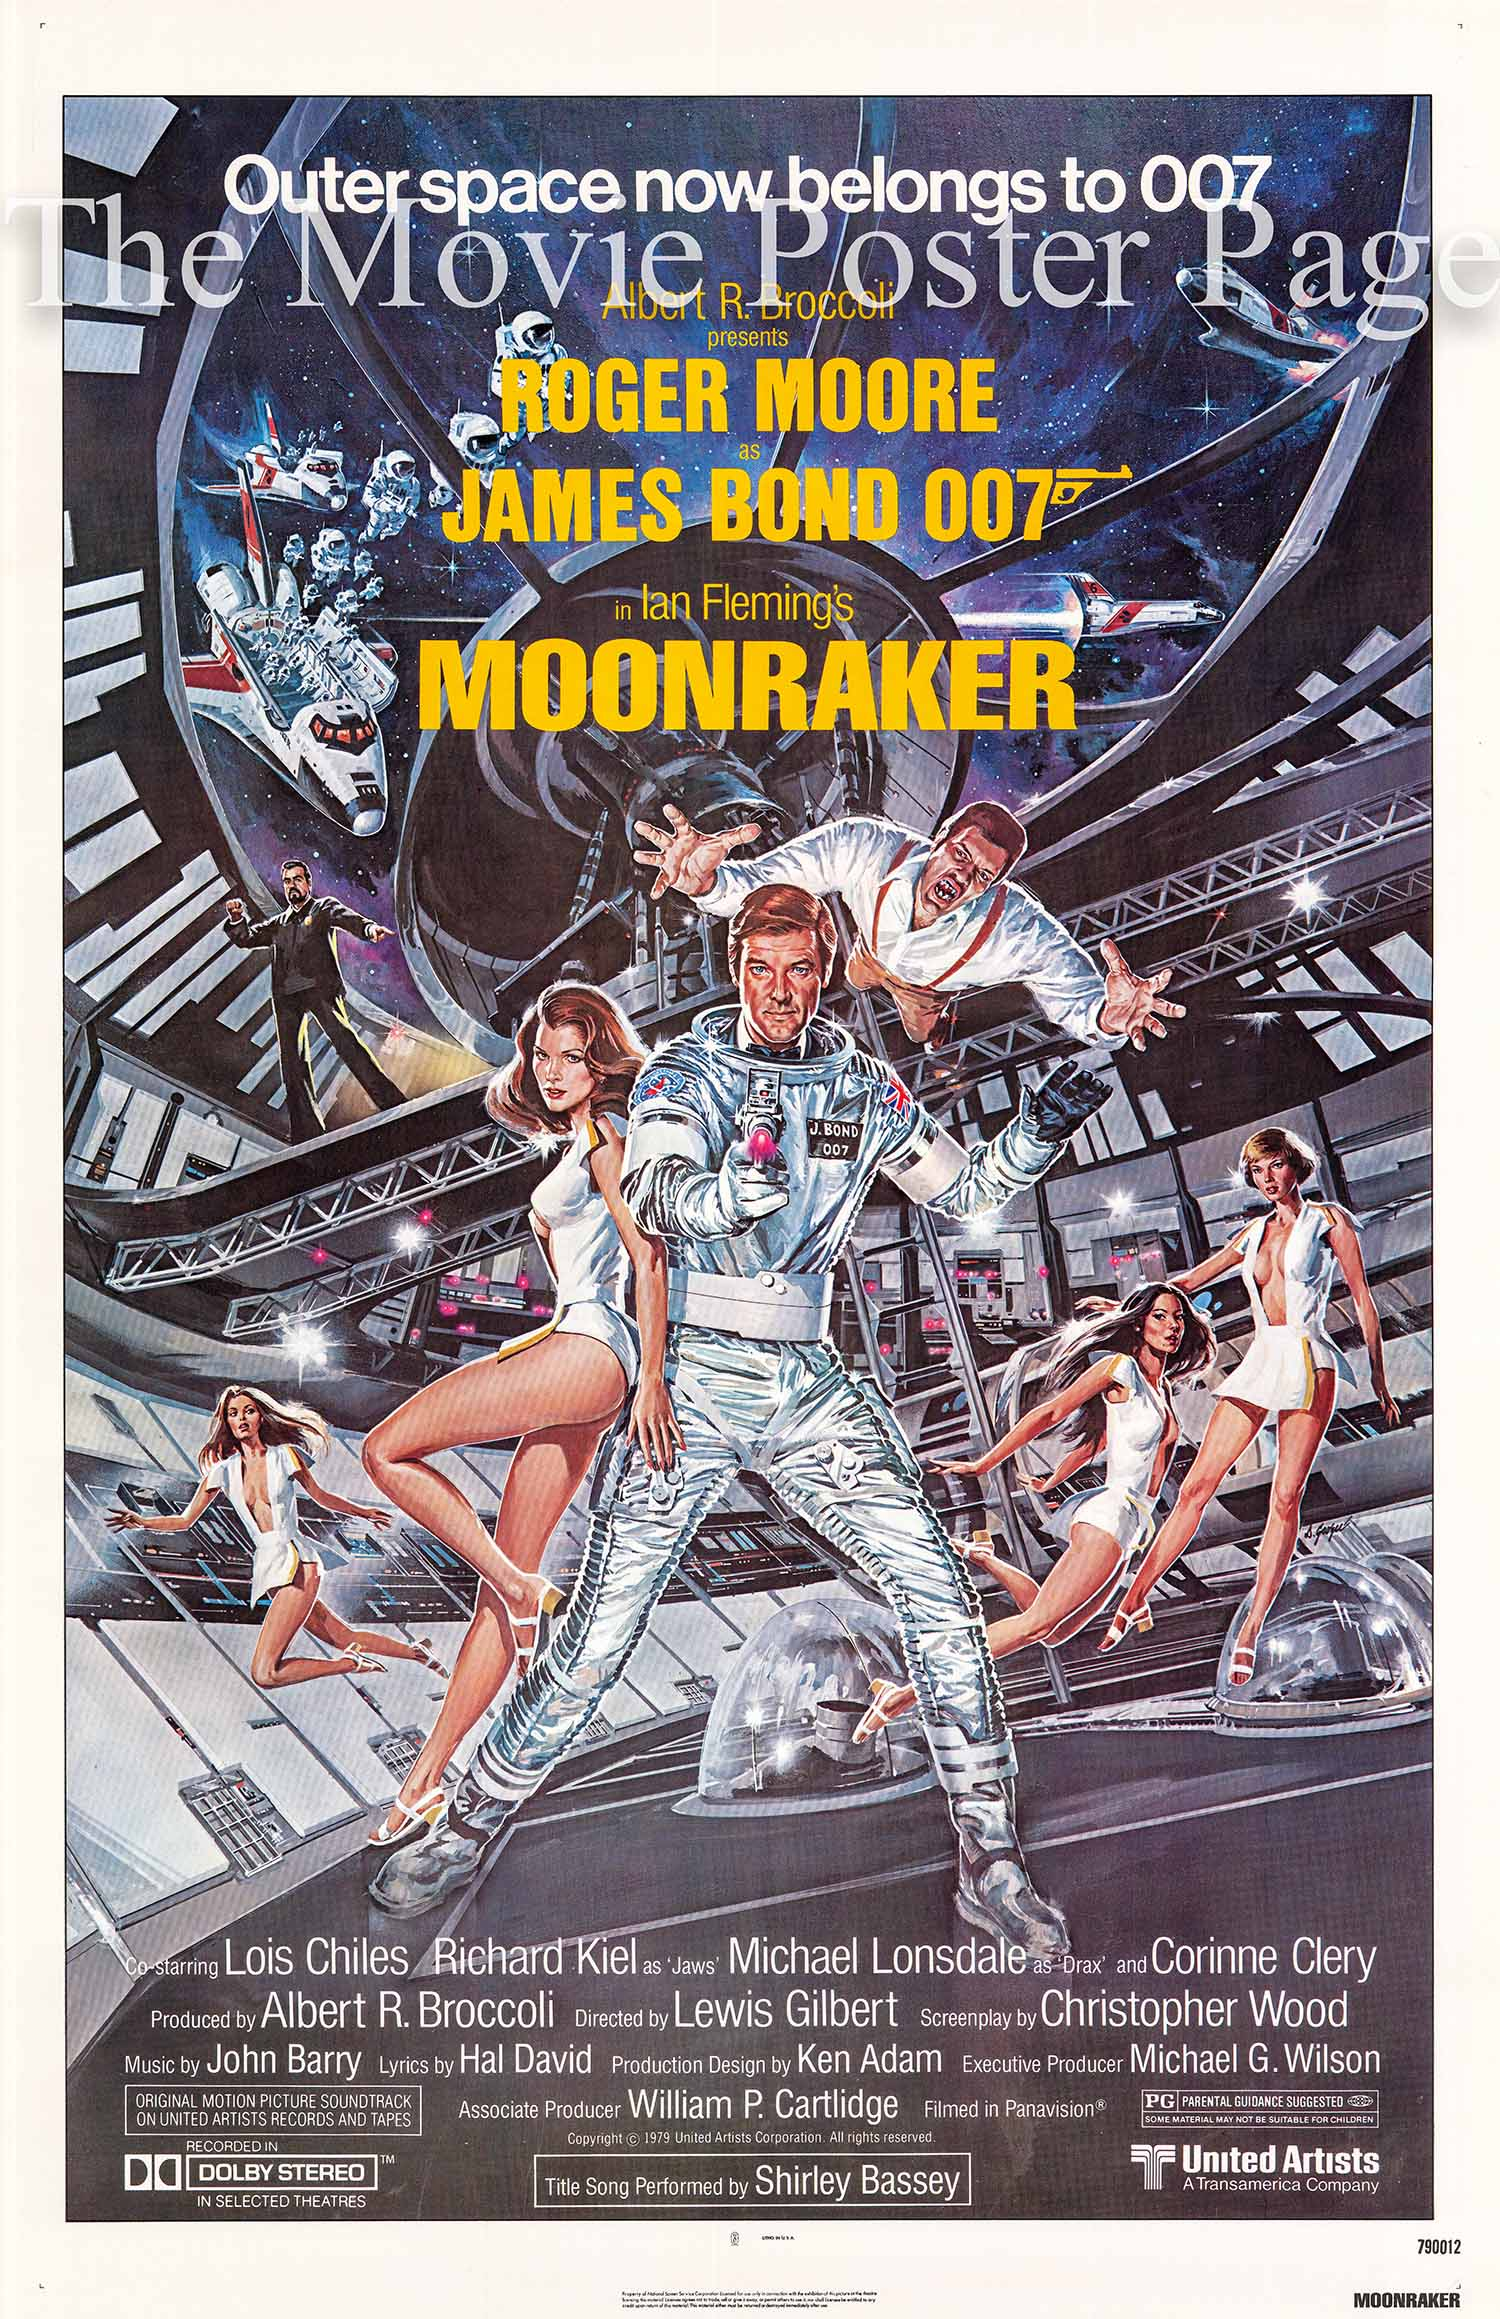 This is a US one-sheet promotional poster with art by Dan Gouzee for the 1979 Lewis Gilbert film Moonraker starring Roger Moore as James Bond.